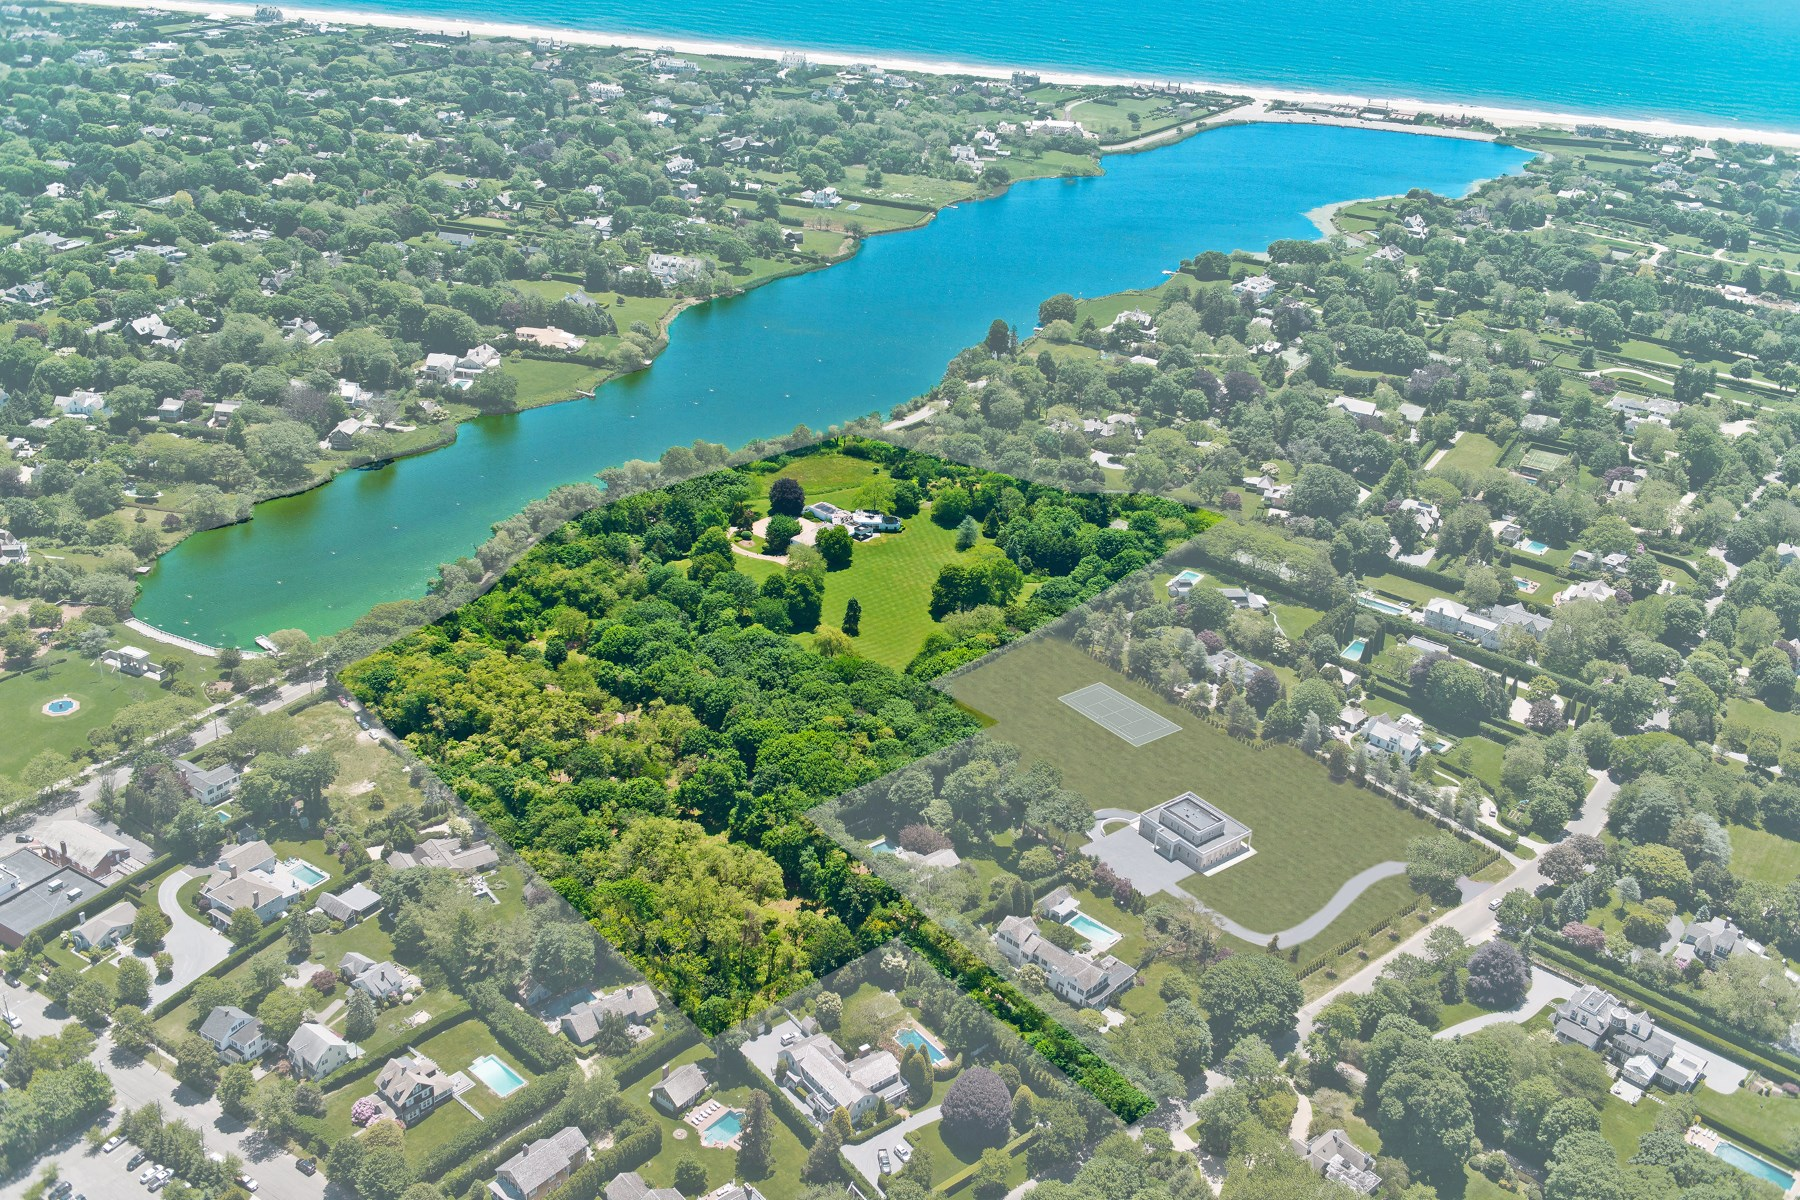 Villa per Vendita alle ore Spectacular Waterviews on Lake Agawam 137,153 Pond Lane, Lot 4 & 5 Southampton Estate Section, Southampton, New York, 11968 Stati Uniti